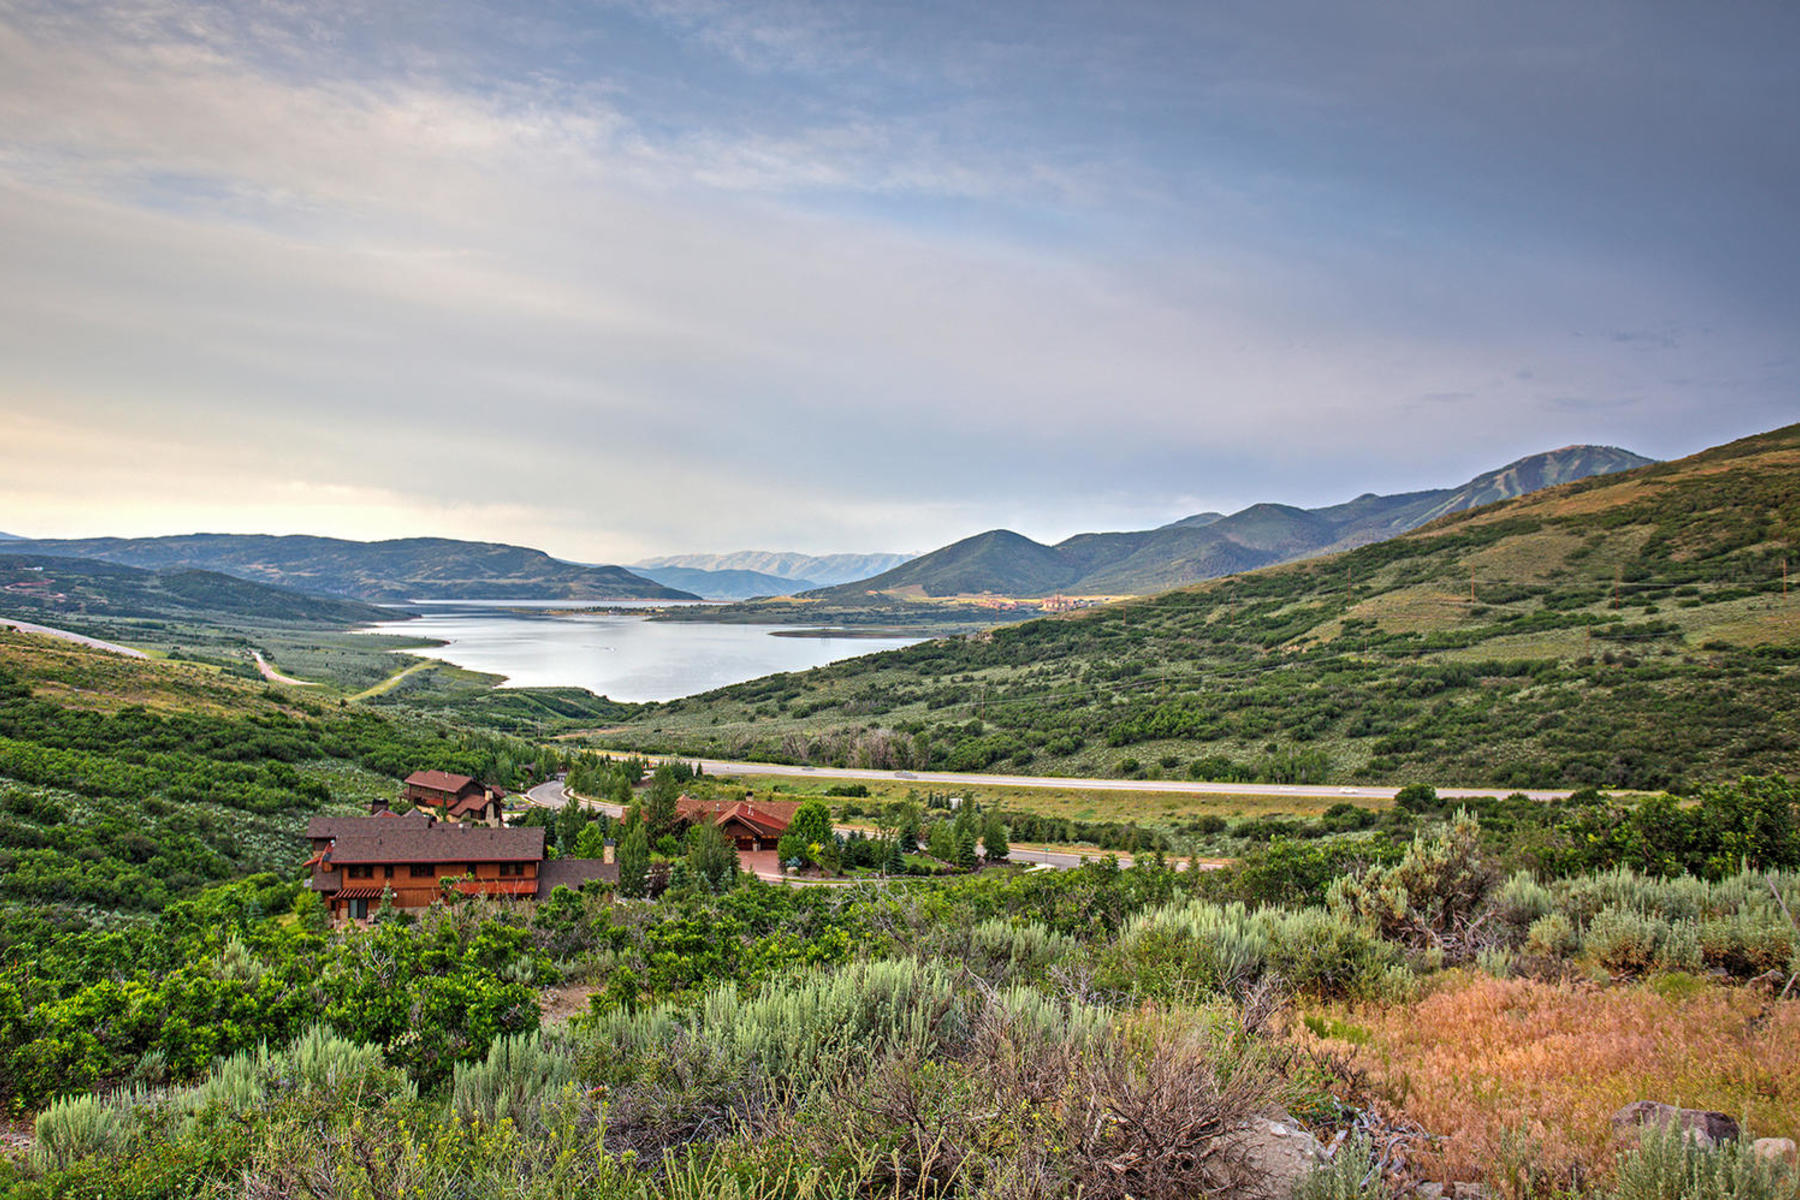 Additional photo for property listing at Come Experience the Gated Community of Deer Vista 170 W Vista Ridge Rd Lot 93 Heber City, Utah 84032 United States